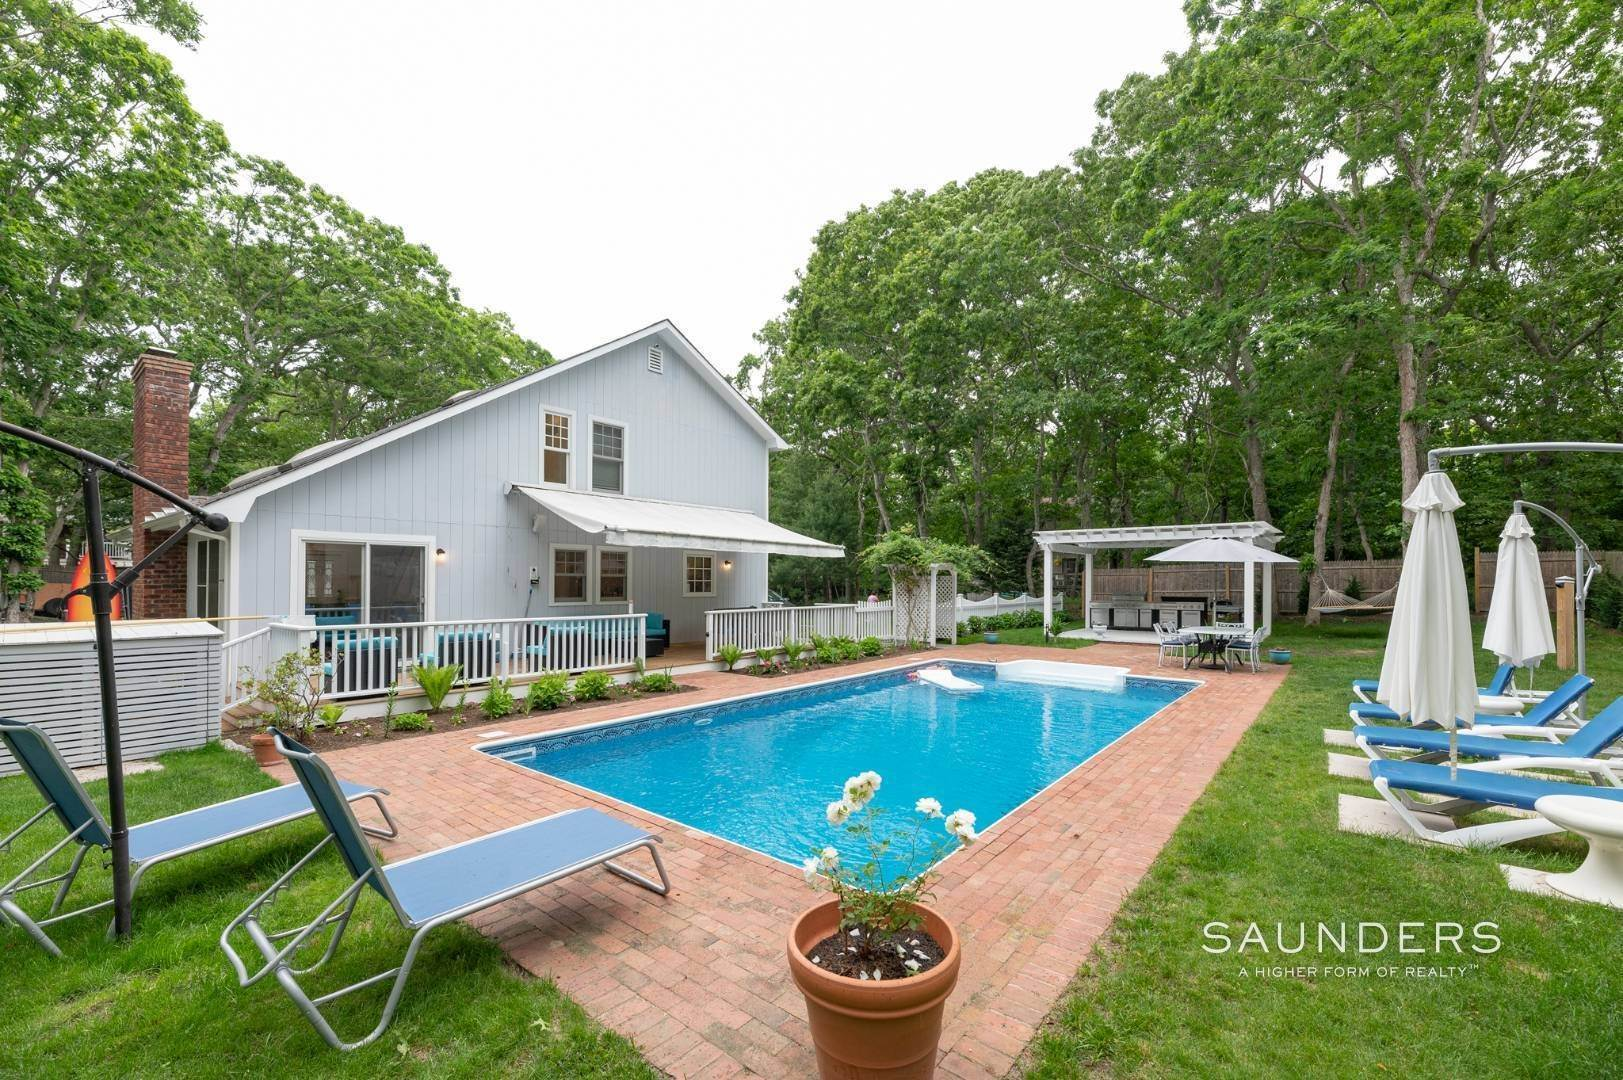 19. Single Family Homes for Sale at Renovated In Springs With Pool And Outdoor Entertaining 28 Ocean View Avenue, East Hampton, East Hampton Town, NY 11937